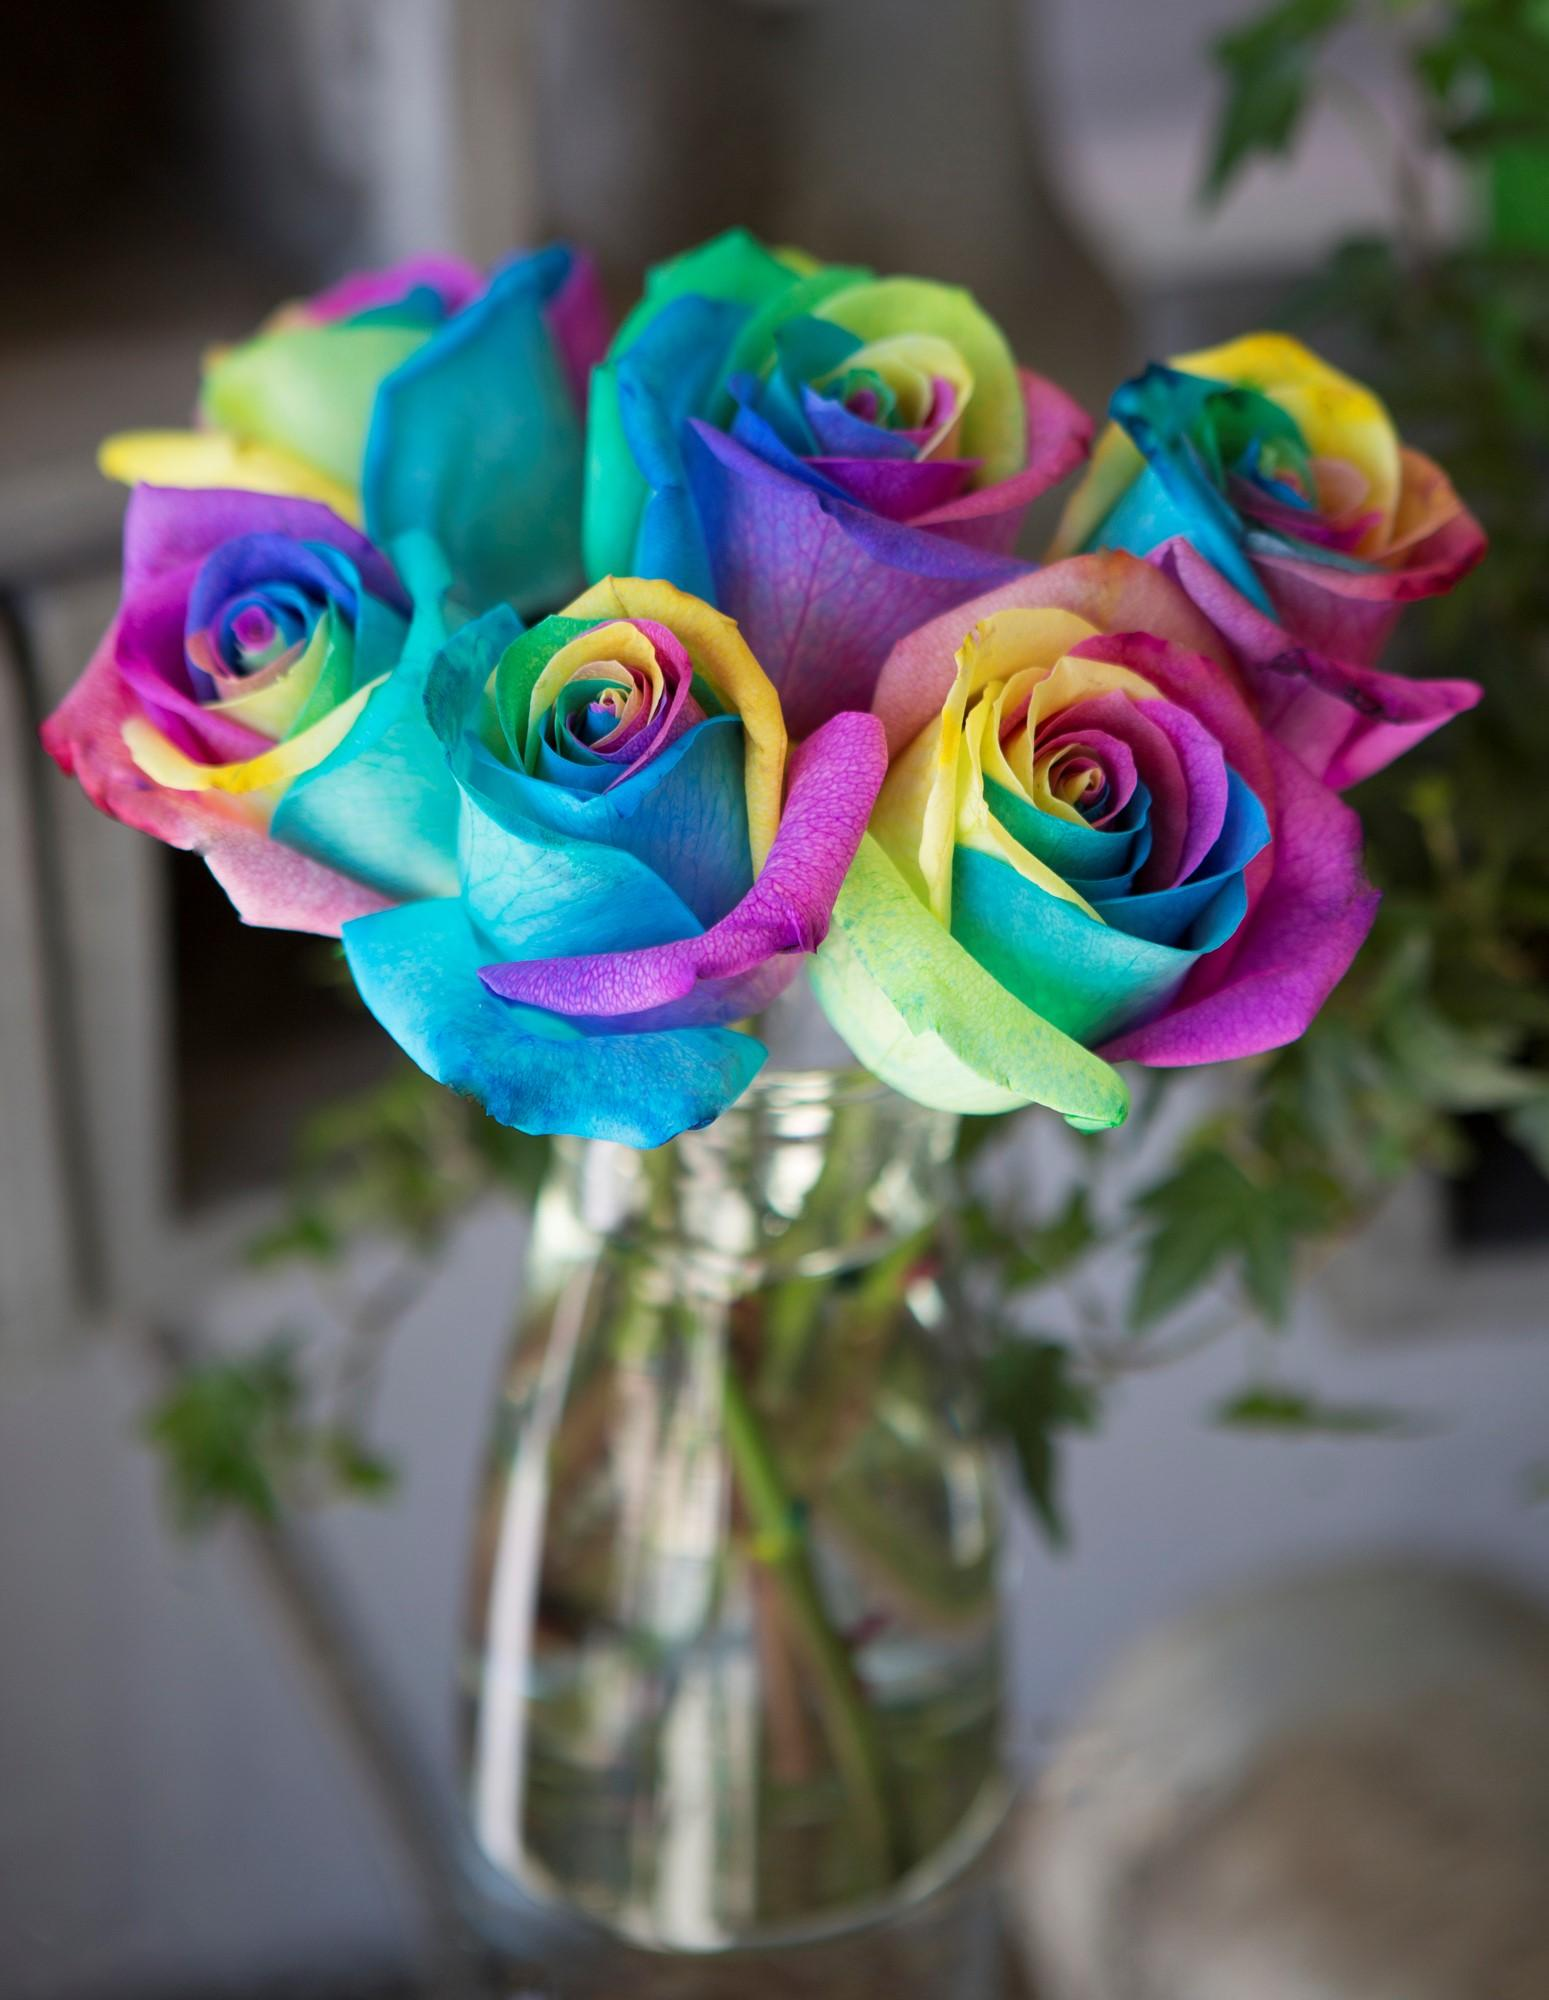 Kabloom bouquet of fresh cut rainbow roses 6 for How much are rainbow roses